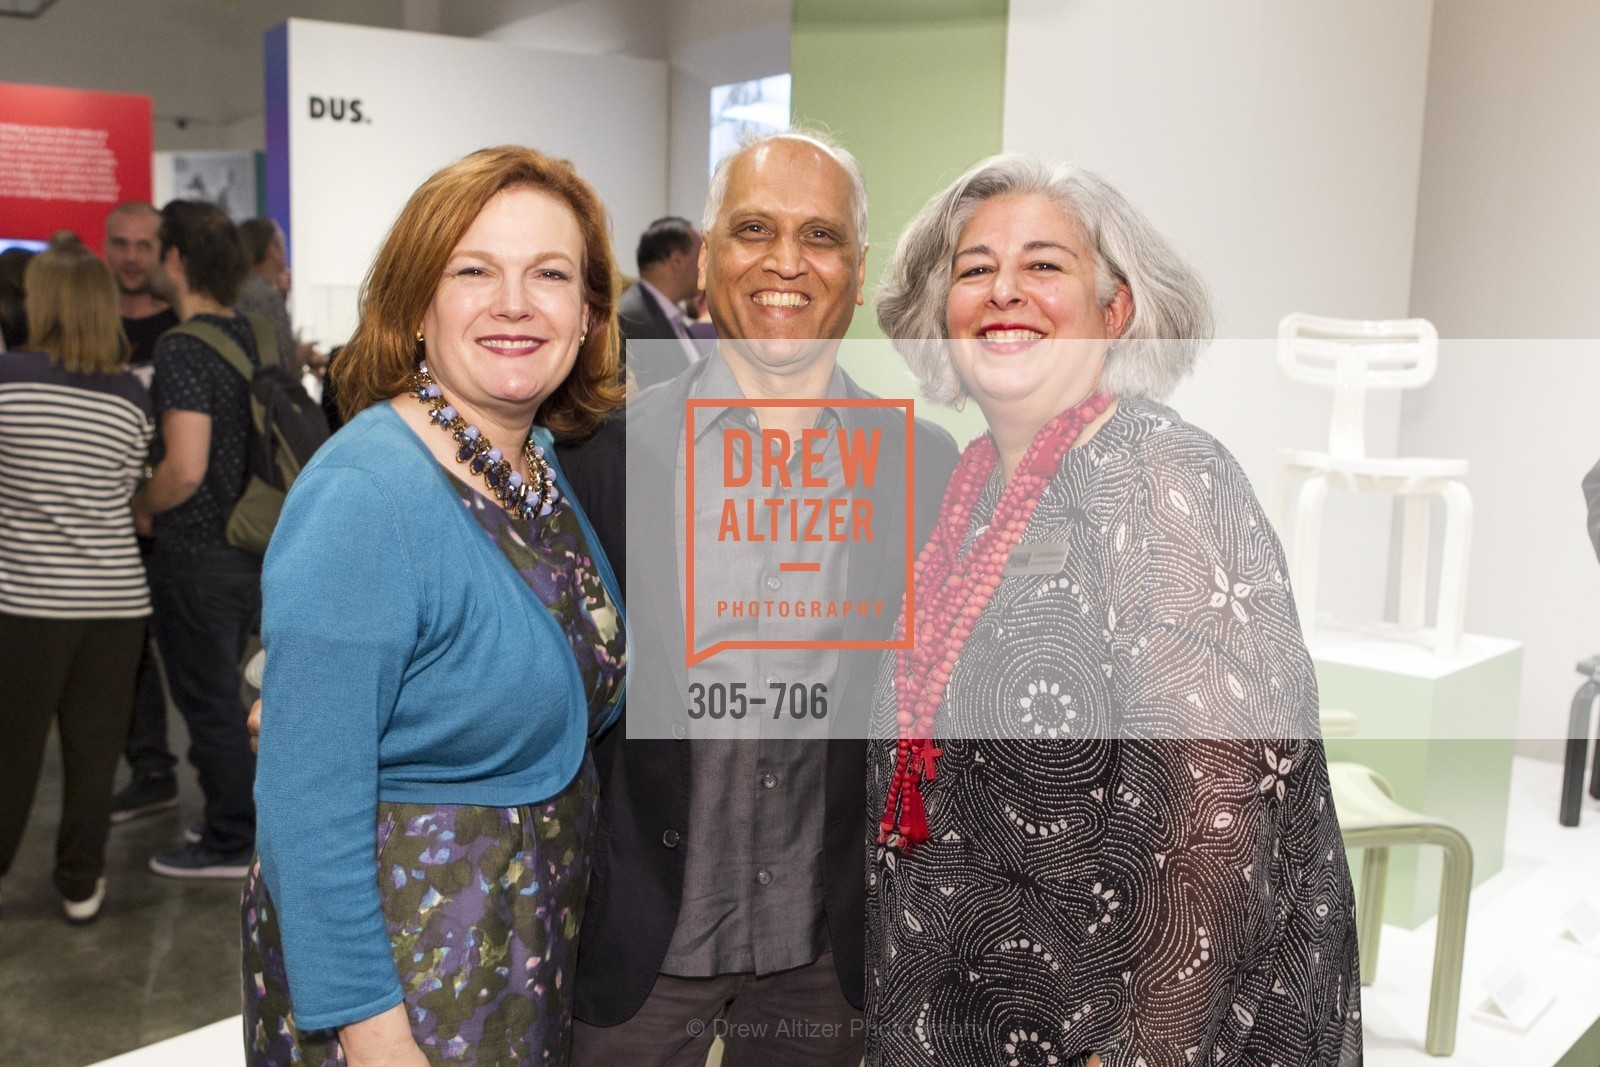 Jennifer Raiser, Zahid Sardar, JoAnn Edwards, Exhibit Opening at the MUSEUM OF CRAFT AND DESIGN - Hands Off: New Dutch Design at the Confluence of Technology & Craft, US, May 8th, 2015,Drew Altizer, Drew Altizer Photography, full-service agency, private events, San Francisco photographer, photographer california